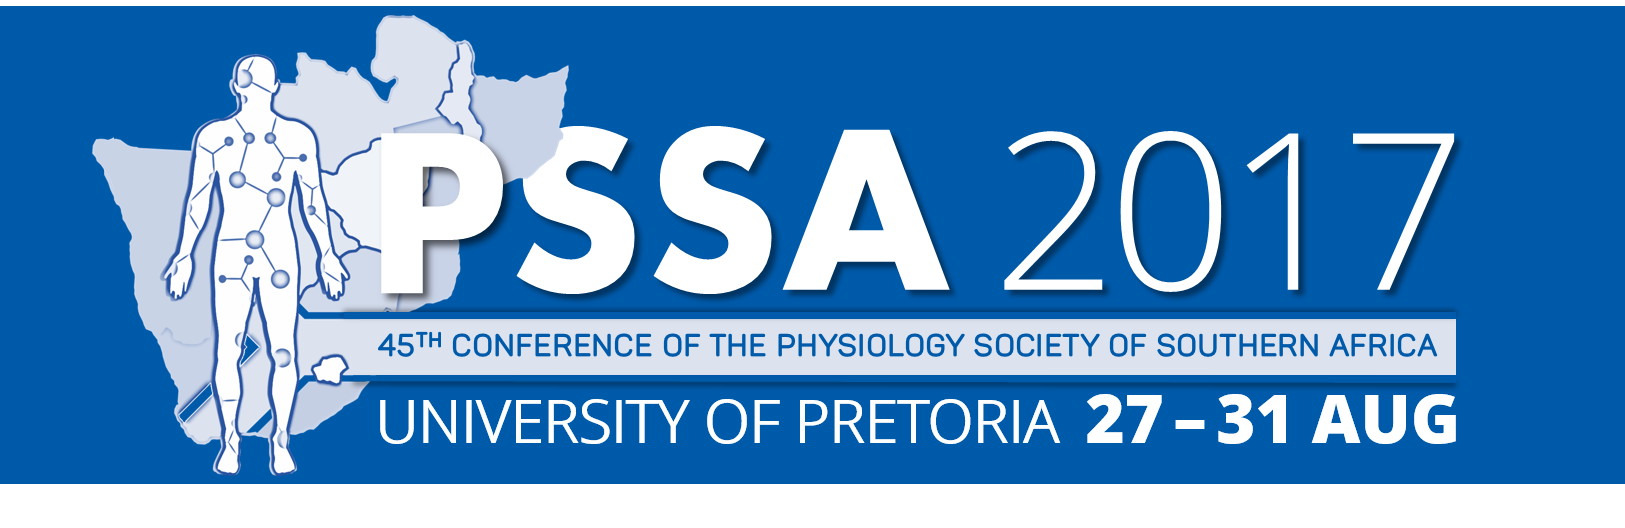 Conference of The Physiology Society of Southern Africa